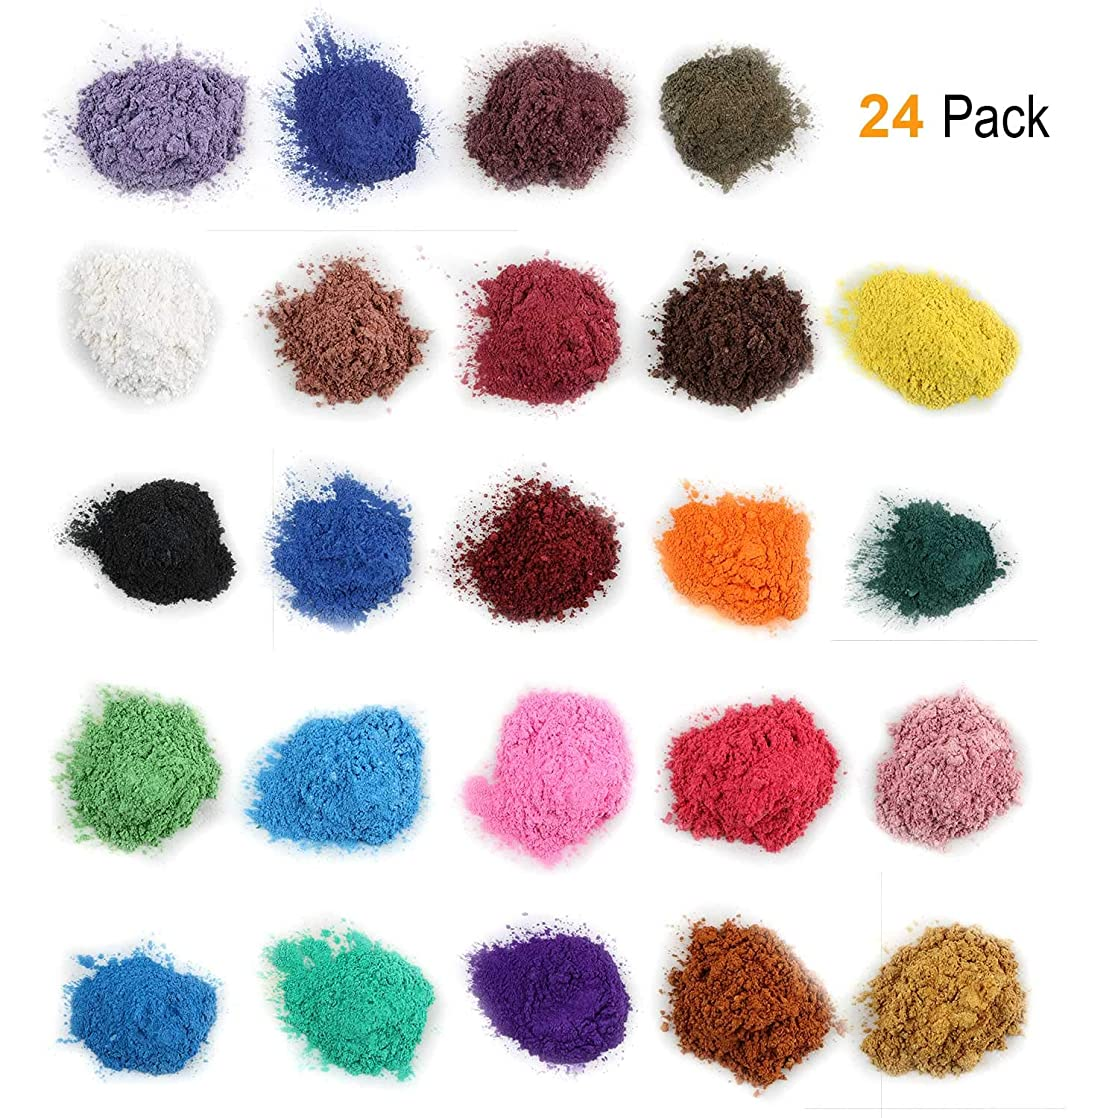 Mica Powder for Bath Bombs [0.18 oz 24 Bags], Cosmetic Grade Soap Making Colorant Pigments for Candle Making, Blush, Eye Shadow, Craft Projects, Nail Art, Resin Jewelry, Blush, Craft Projects lujsntll81294